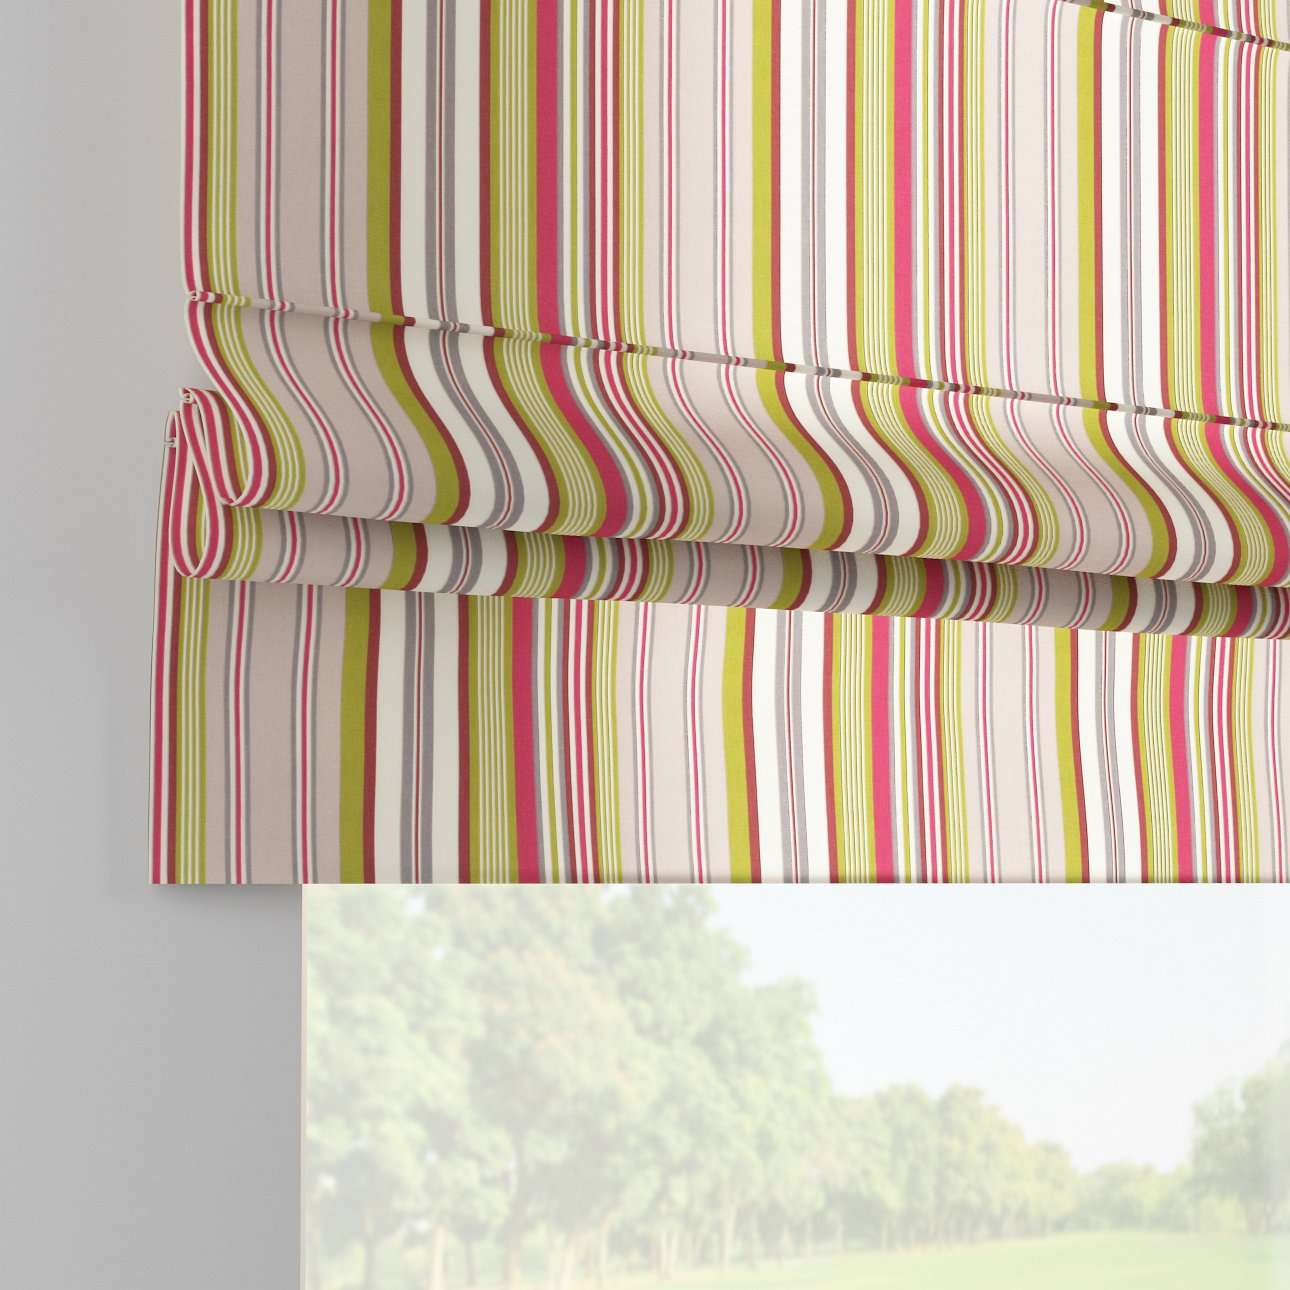 Padva roman blind  80 × 170 cm (31.5 × 67 inch) in collection Flowers, fabric: 311-16